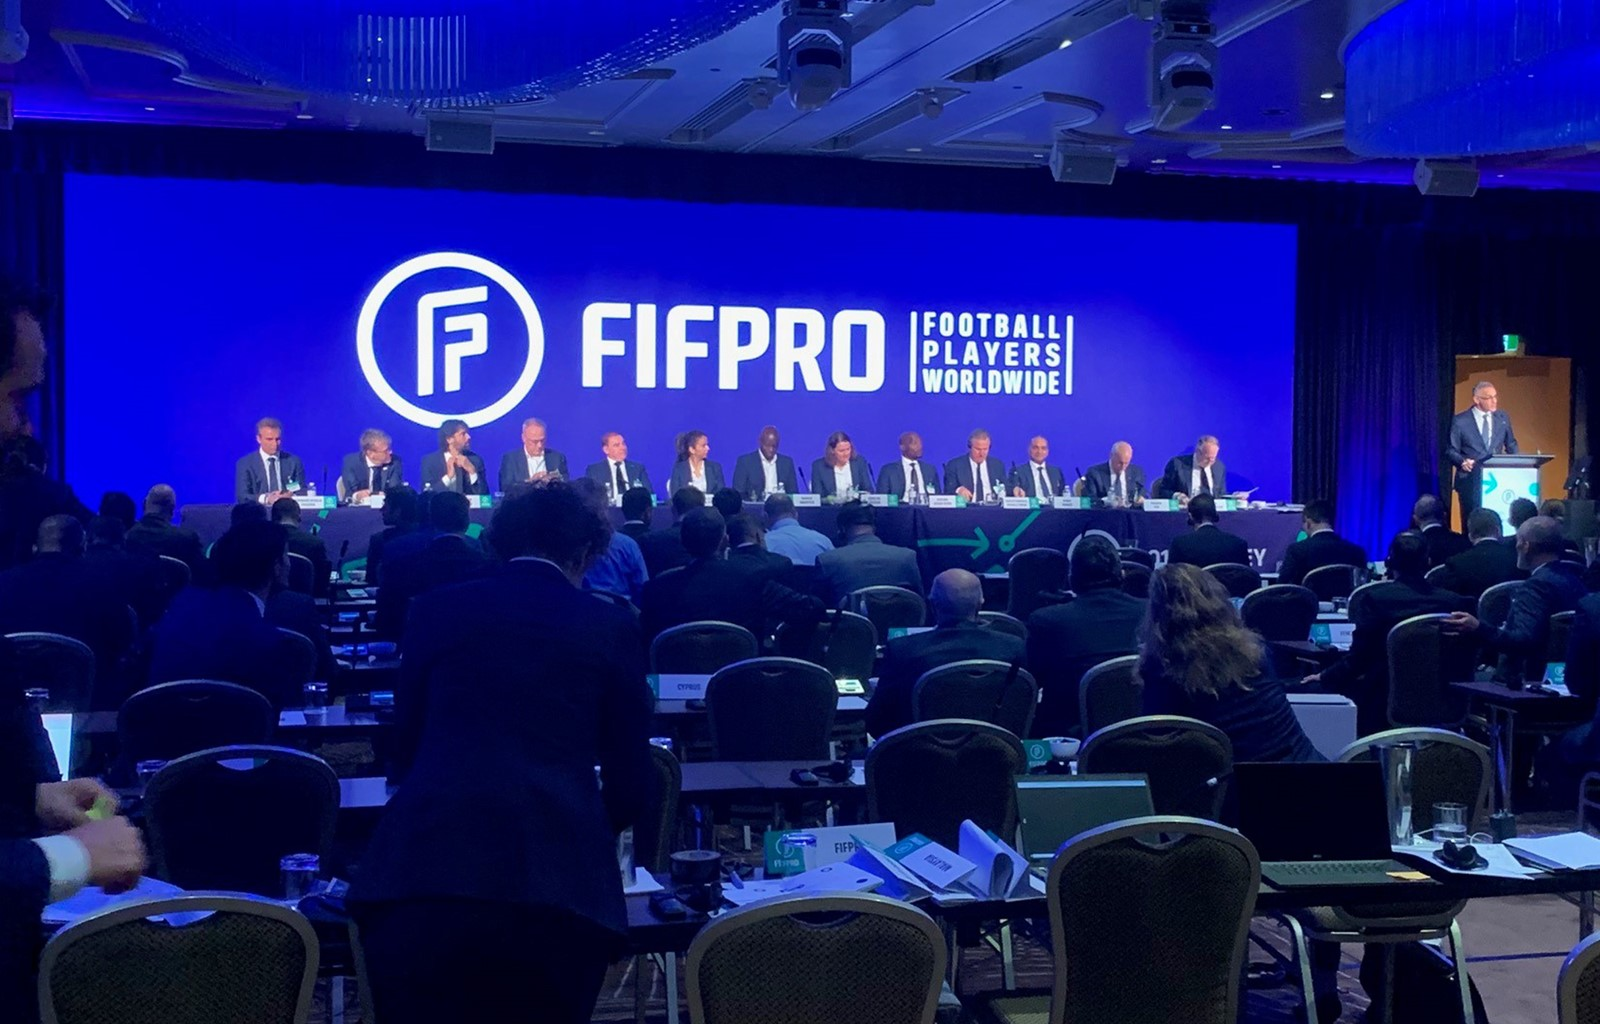 FIFPRO Conference Room 4